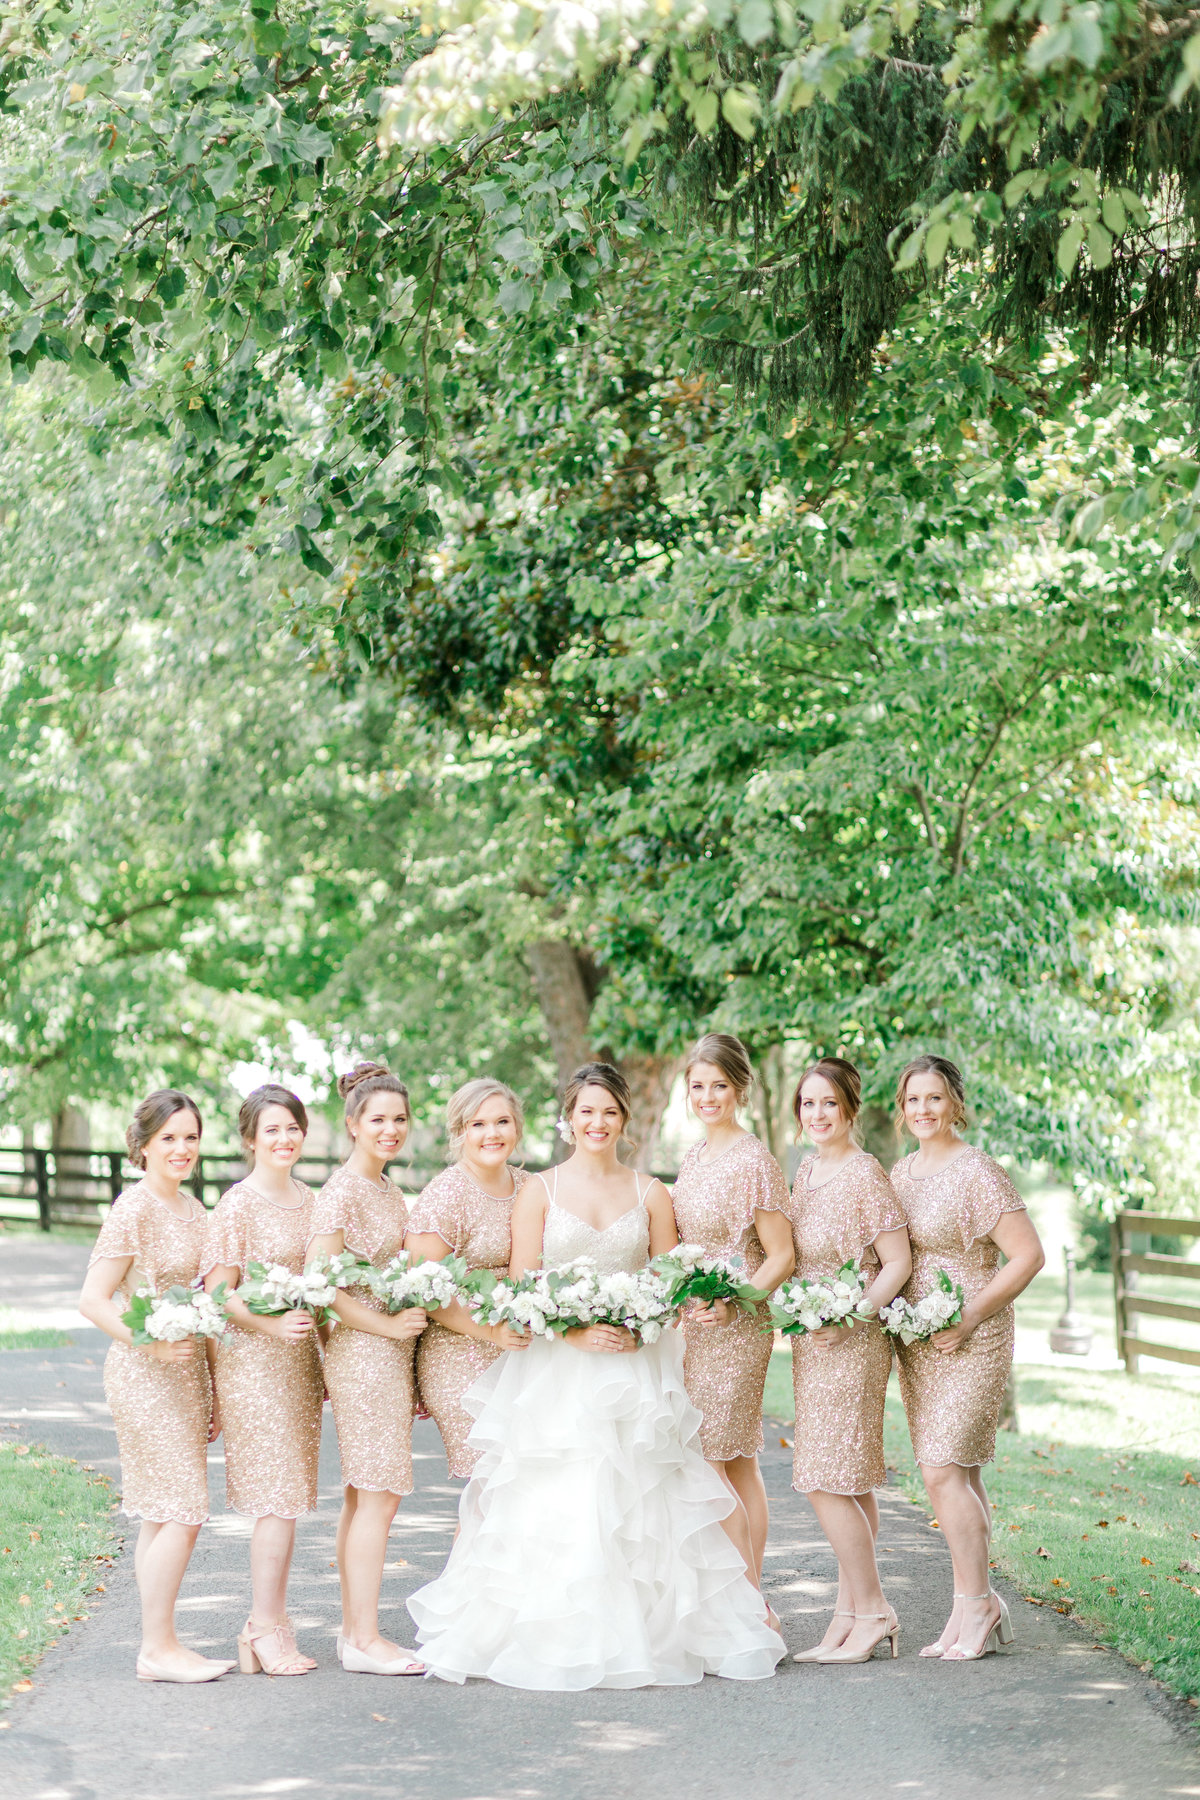 Warrenwood Manor - Kentucky Wedding Venue - Photo by Leanne Hunley 00048